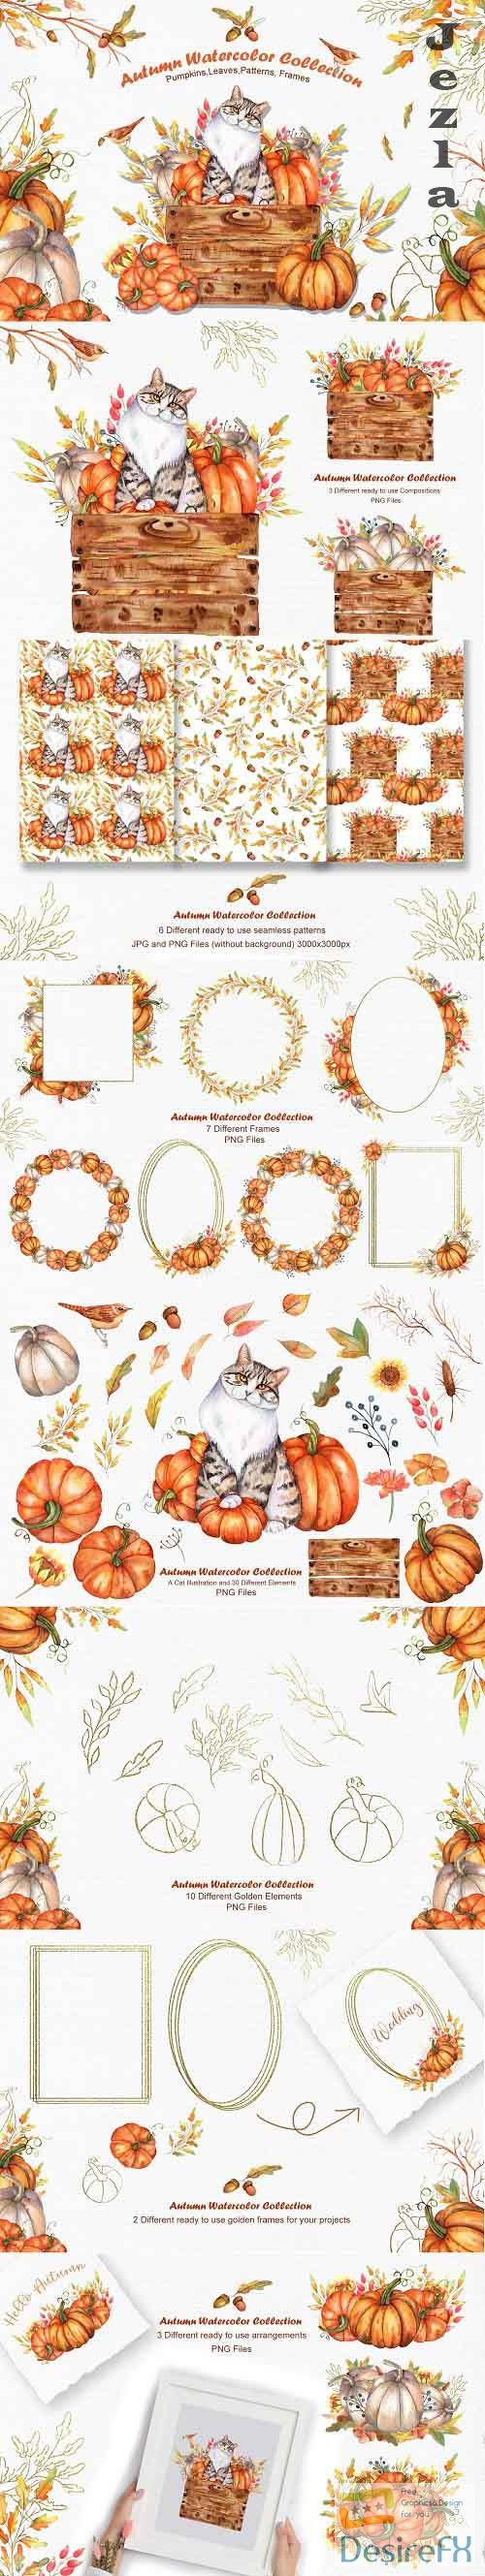 Watercolor Autumn Cat Collection - 5308897